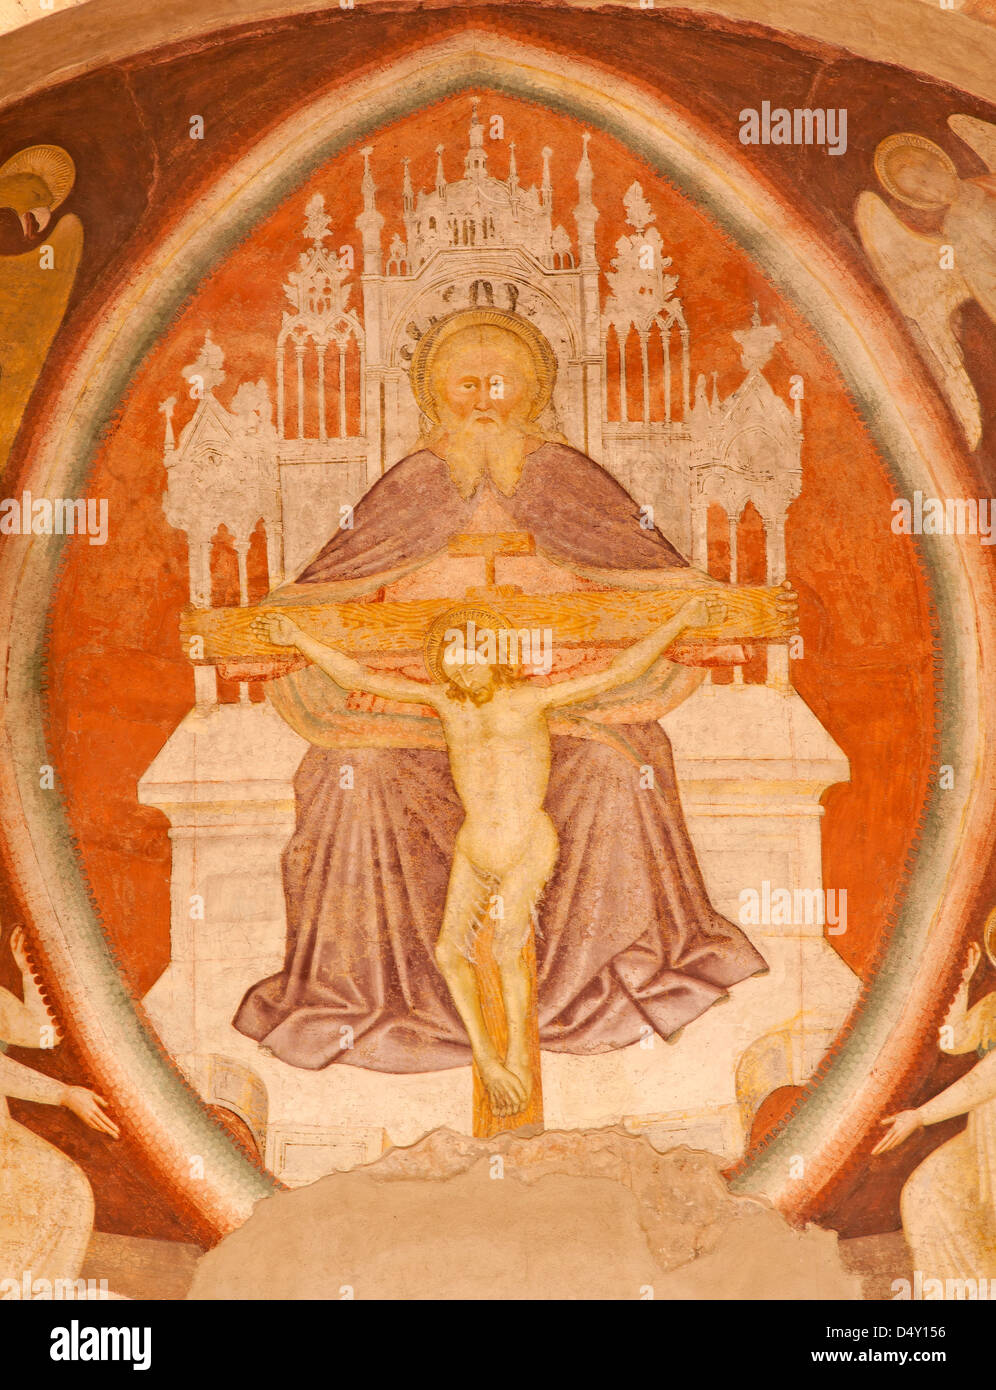 VERONA - JANUARY 28: Fresco of holy Trinity from main apse of Chiesa di Santissima Trinita consecrated in 1117 - Stock Image